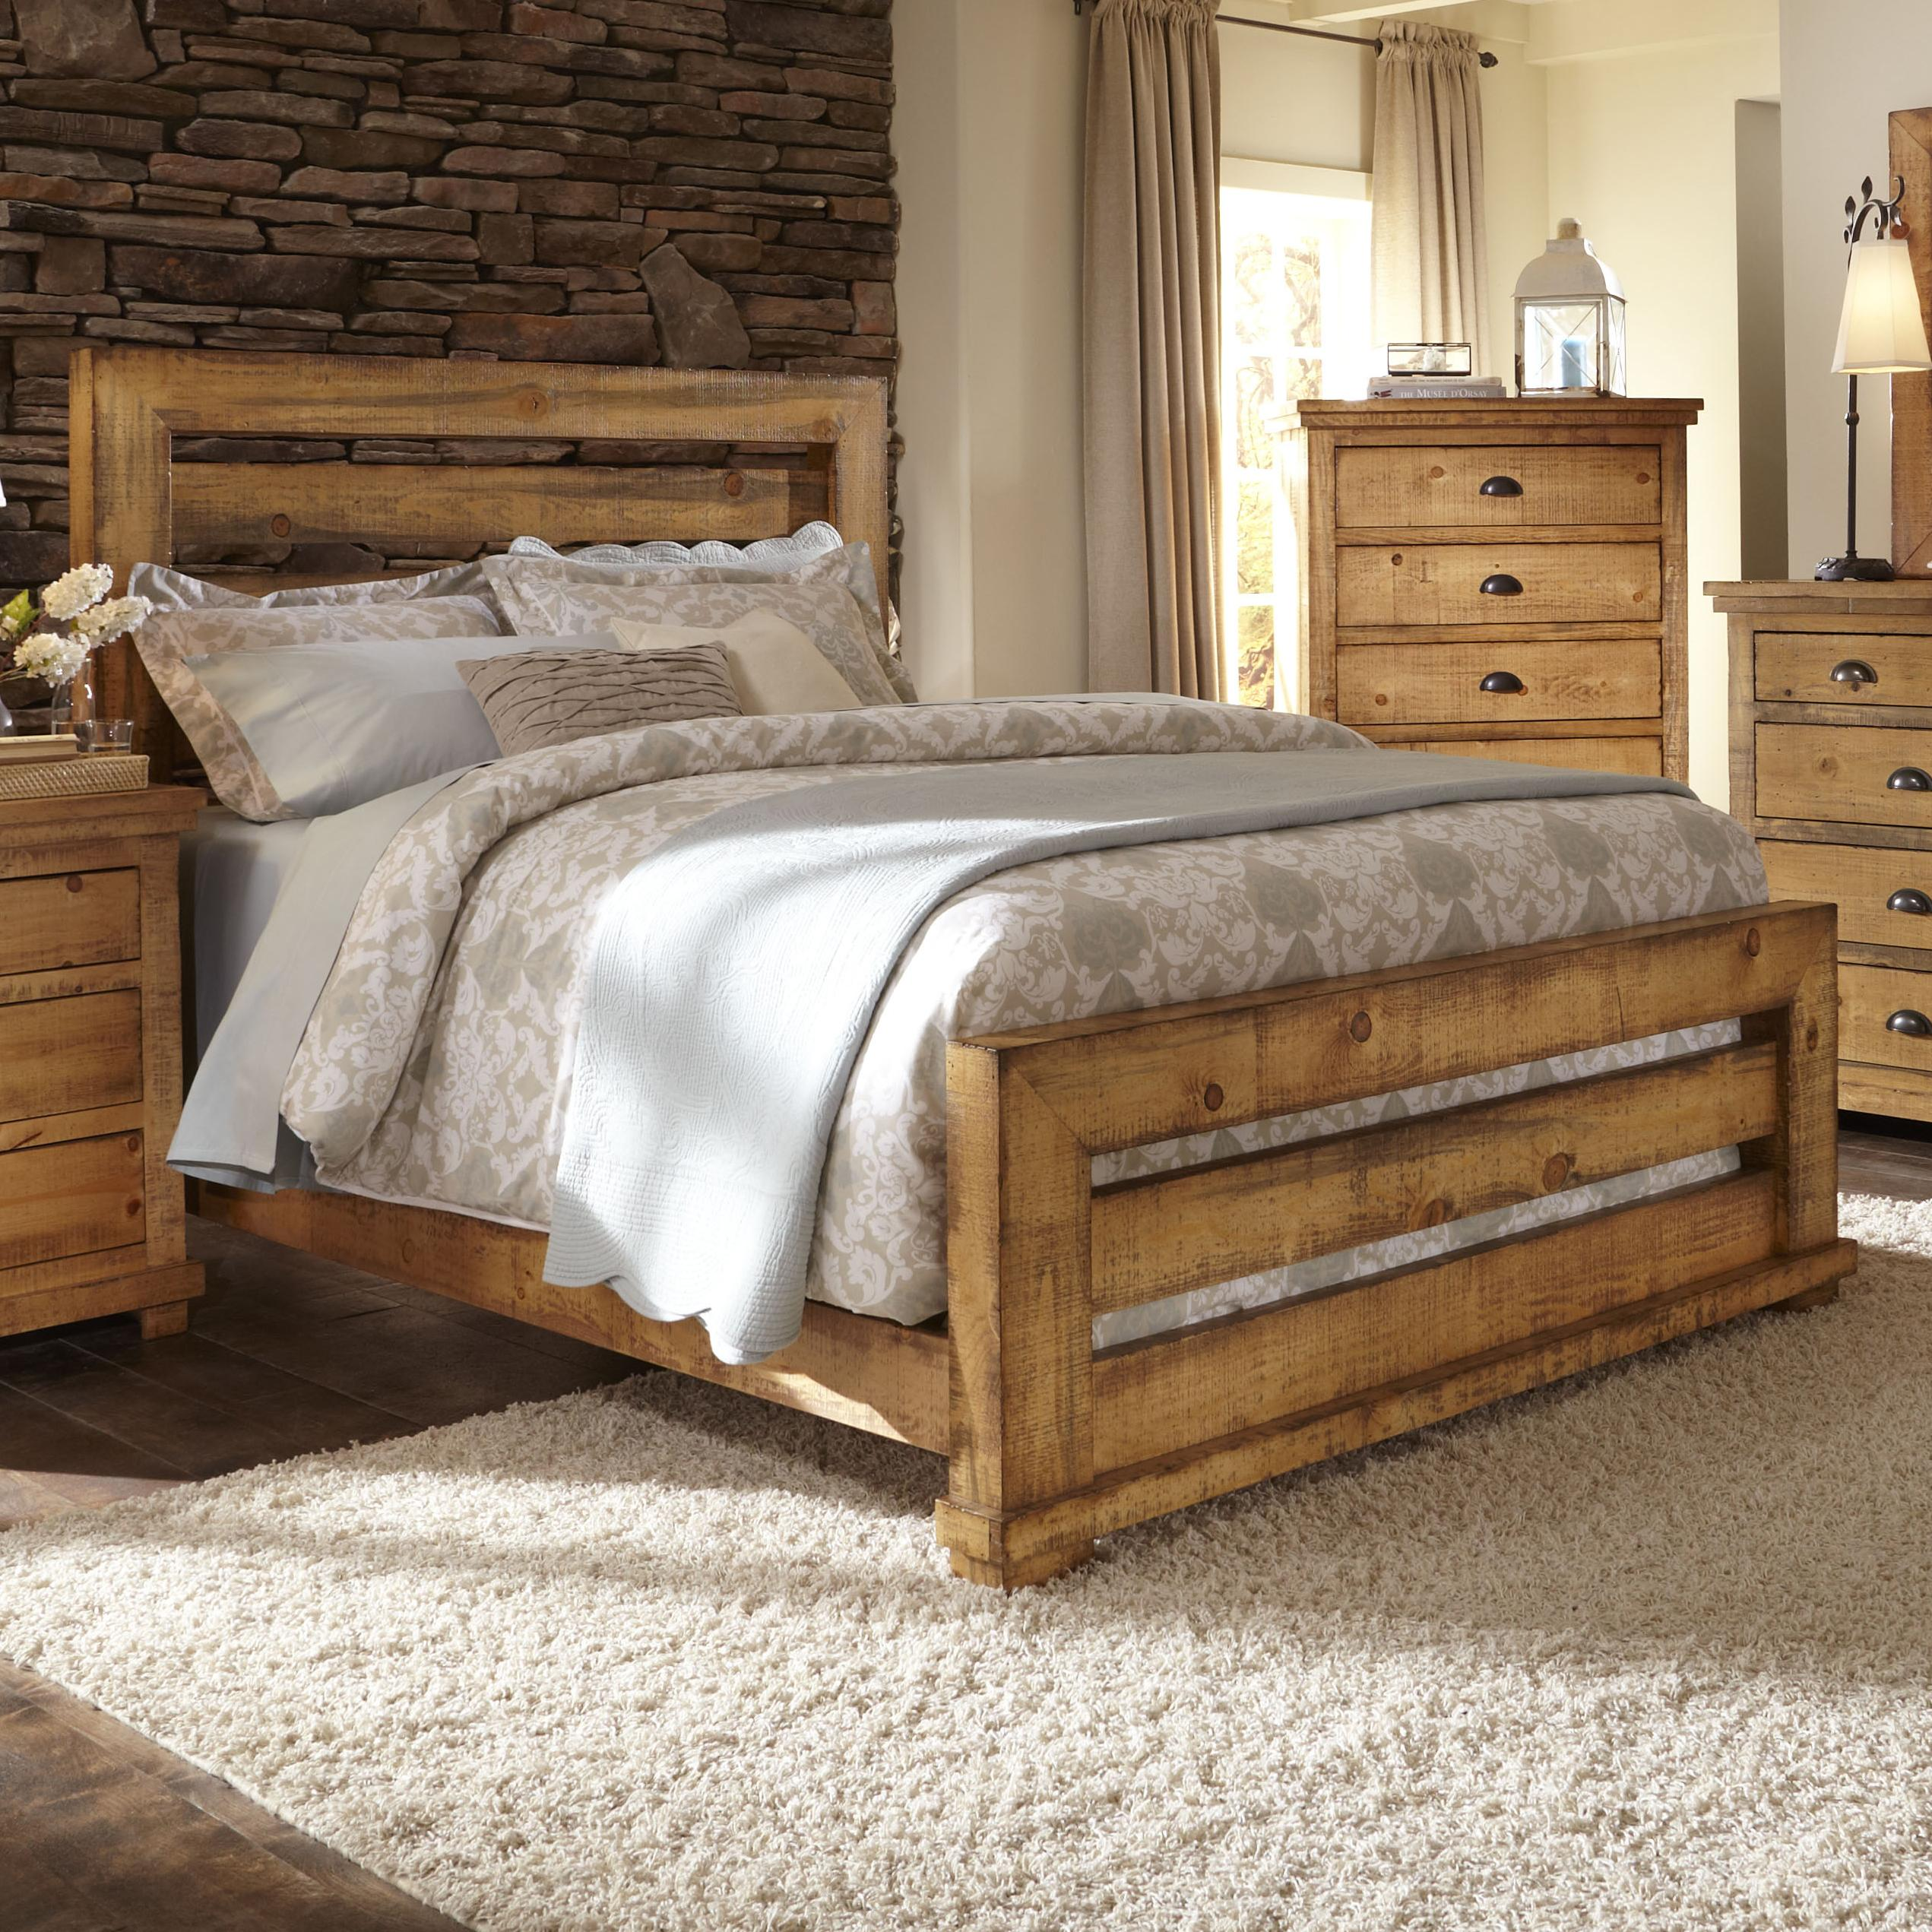 progressive furniture willow queen slat bed with distressed pine frame ahfa headboard footboard dealer locator - Distressed Bed Frame